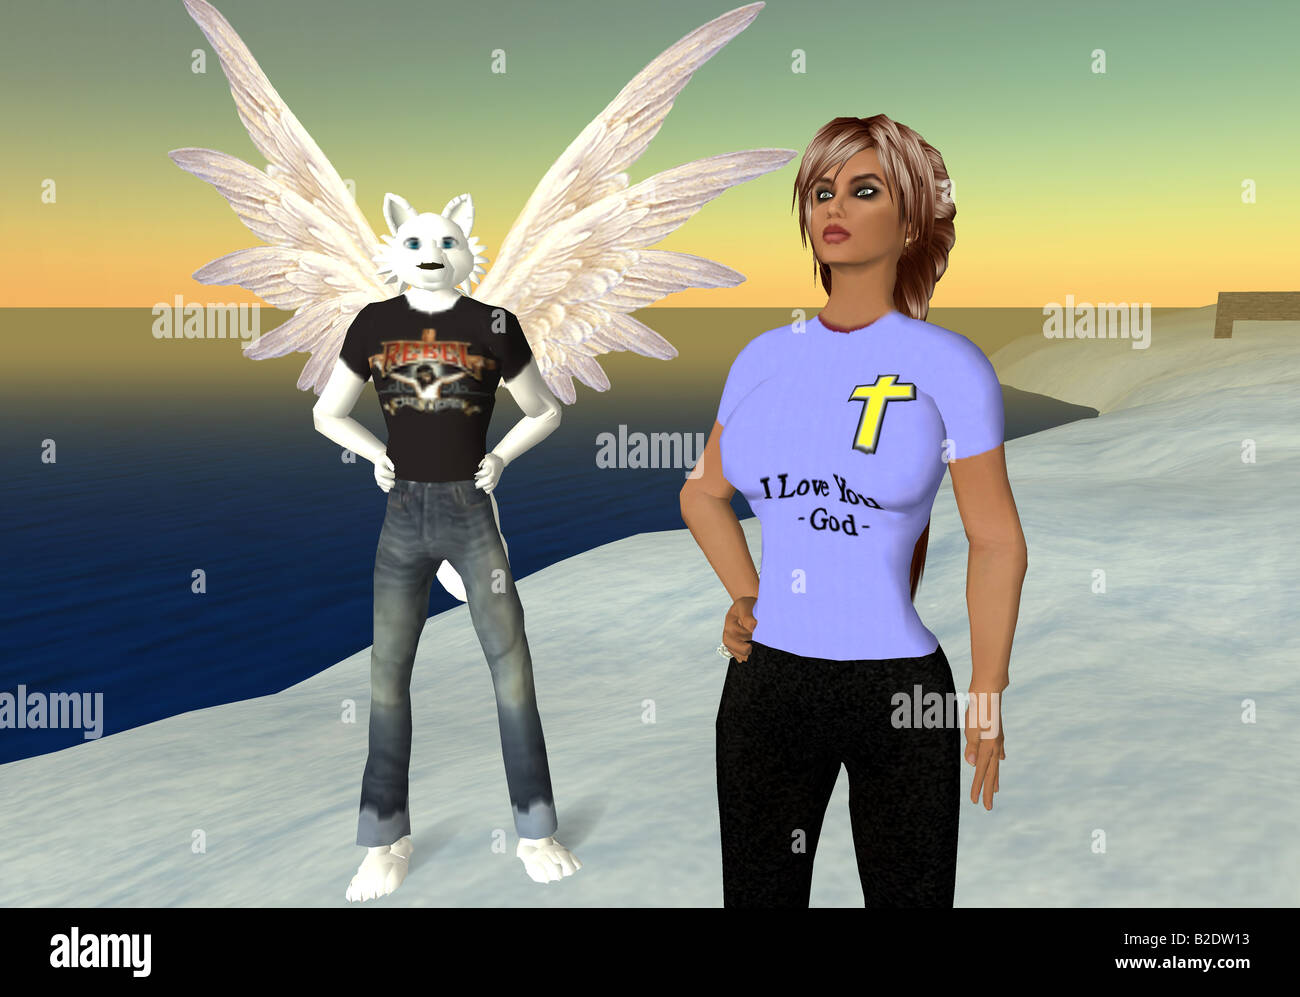 Second Life: A computer grab from the virtual world Second Life - Stock Image